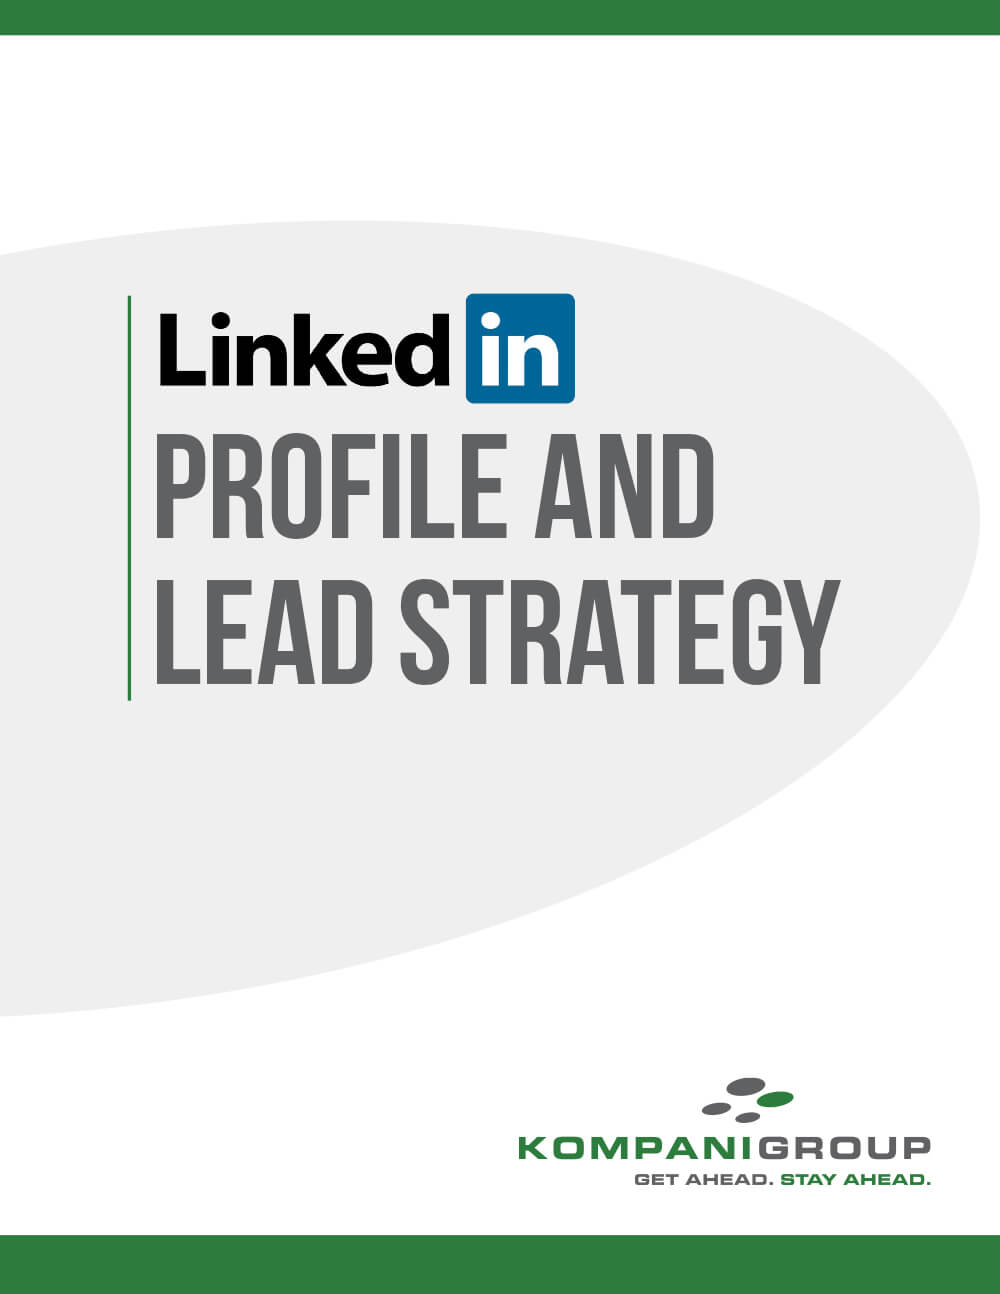 Kompani Group LinkedIn lead generation strategy